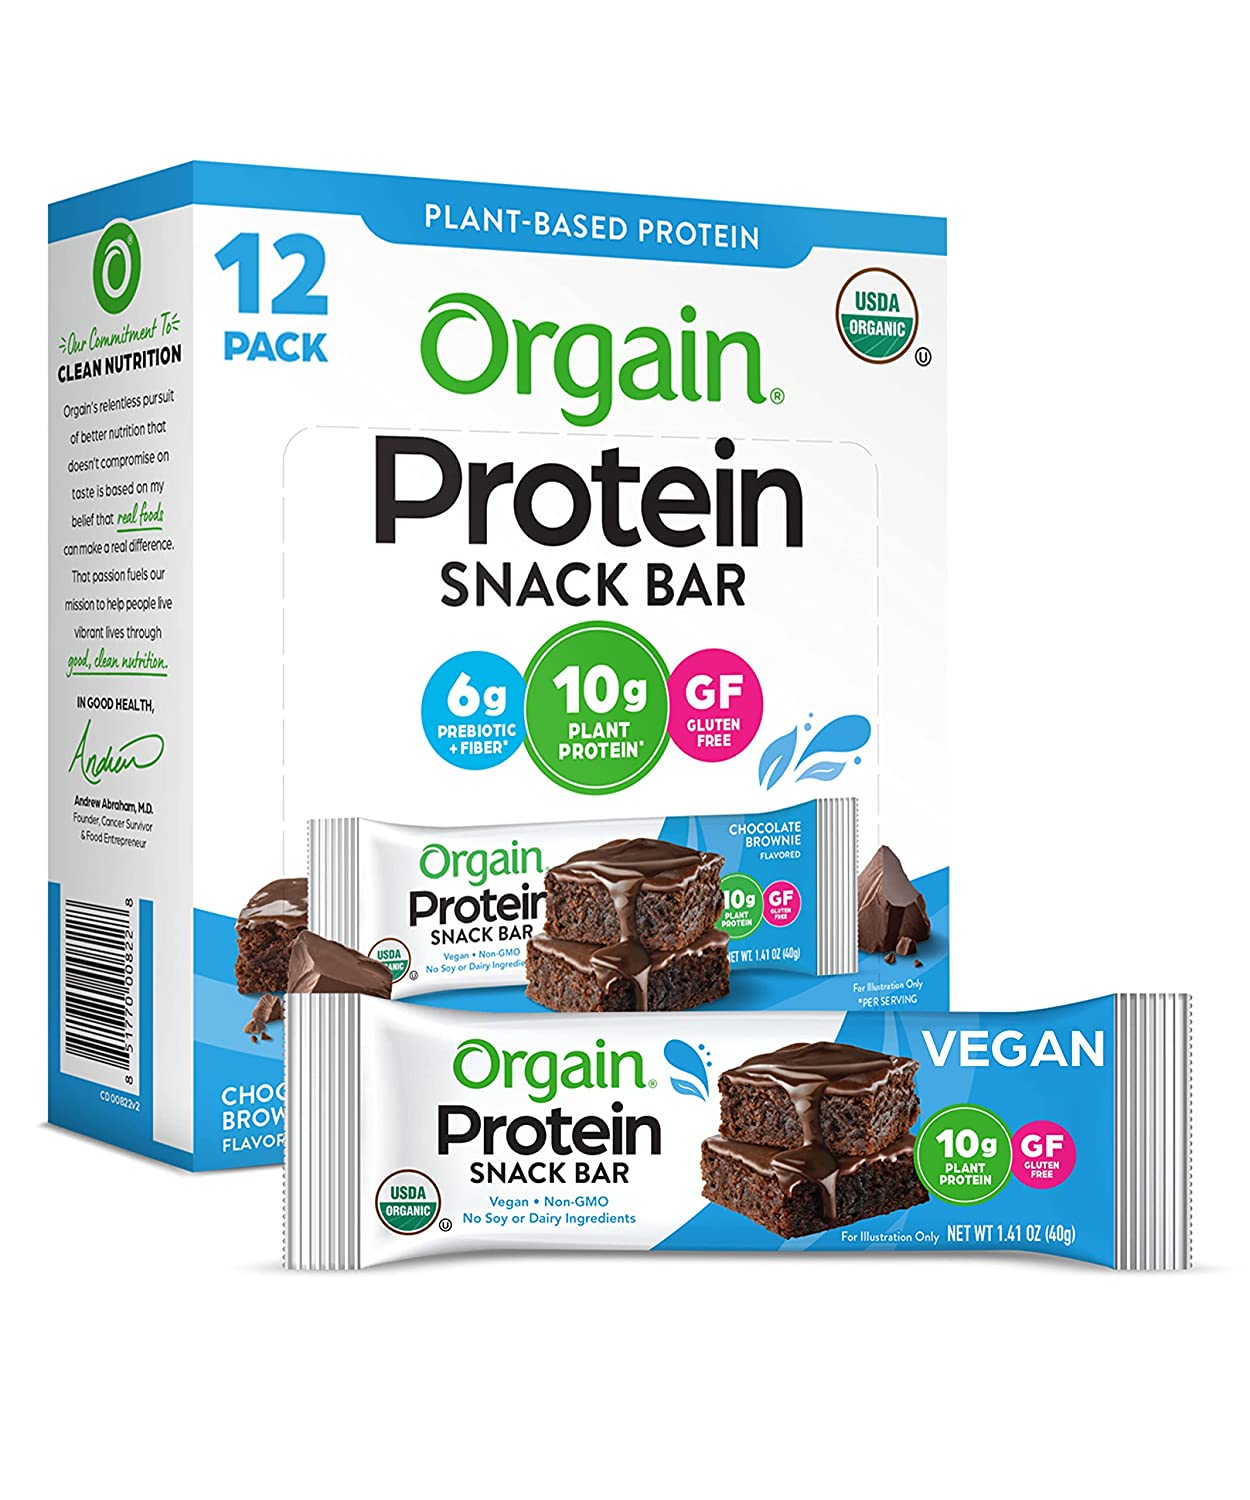 Orgain Organic Plant Based Protein Bar, Chocolate Brownie - Vegan, Gluten Free, Dairy Free, Soy Free, Lactose Free, Kosher, Non-GMO, 1.41 Ounce, 12 Count (Packaging May Vary)